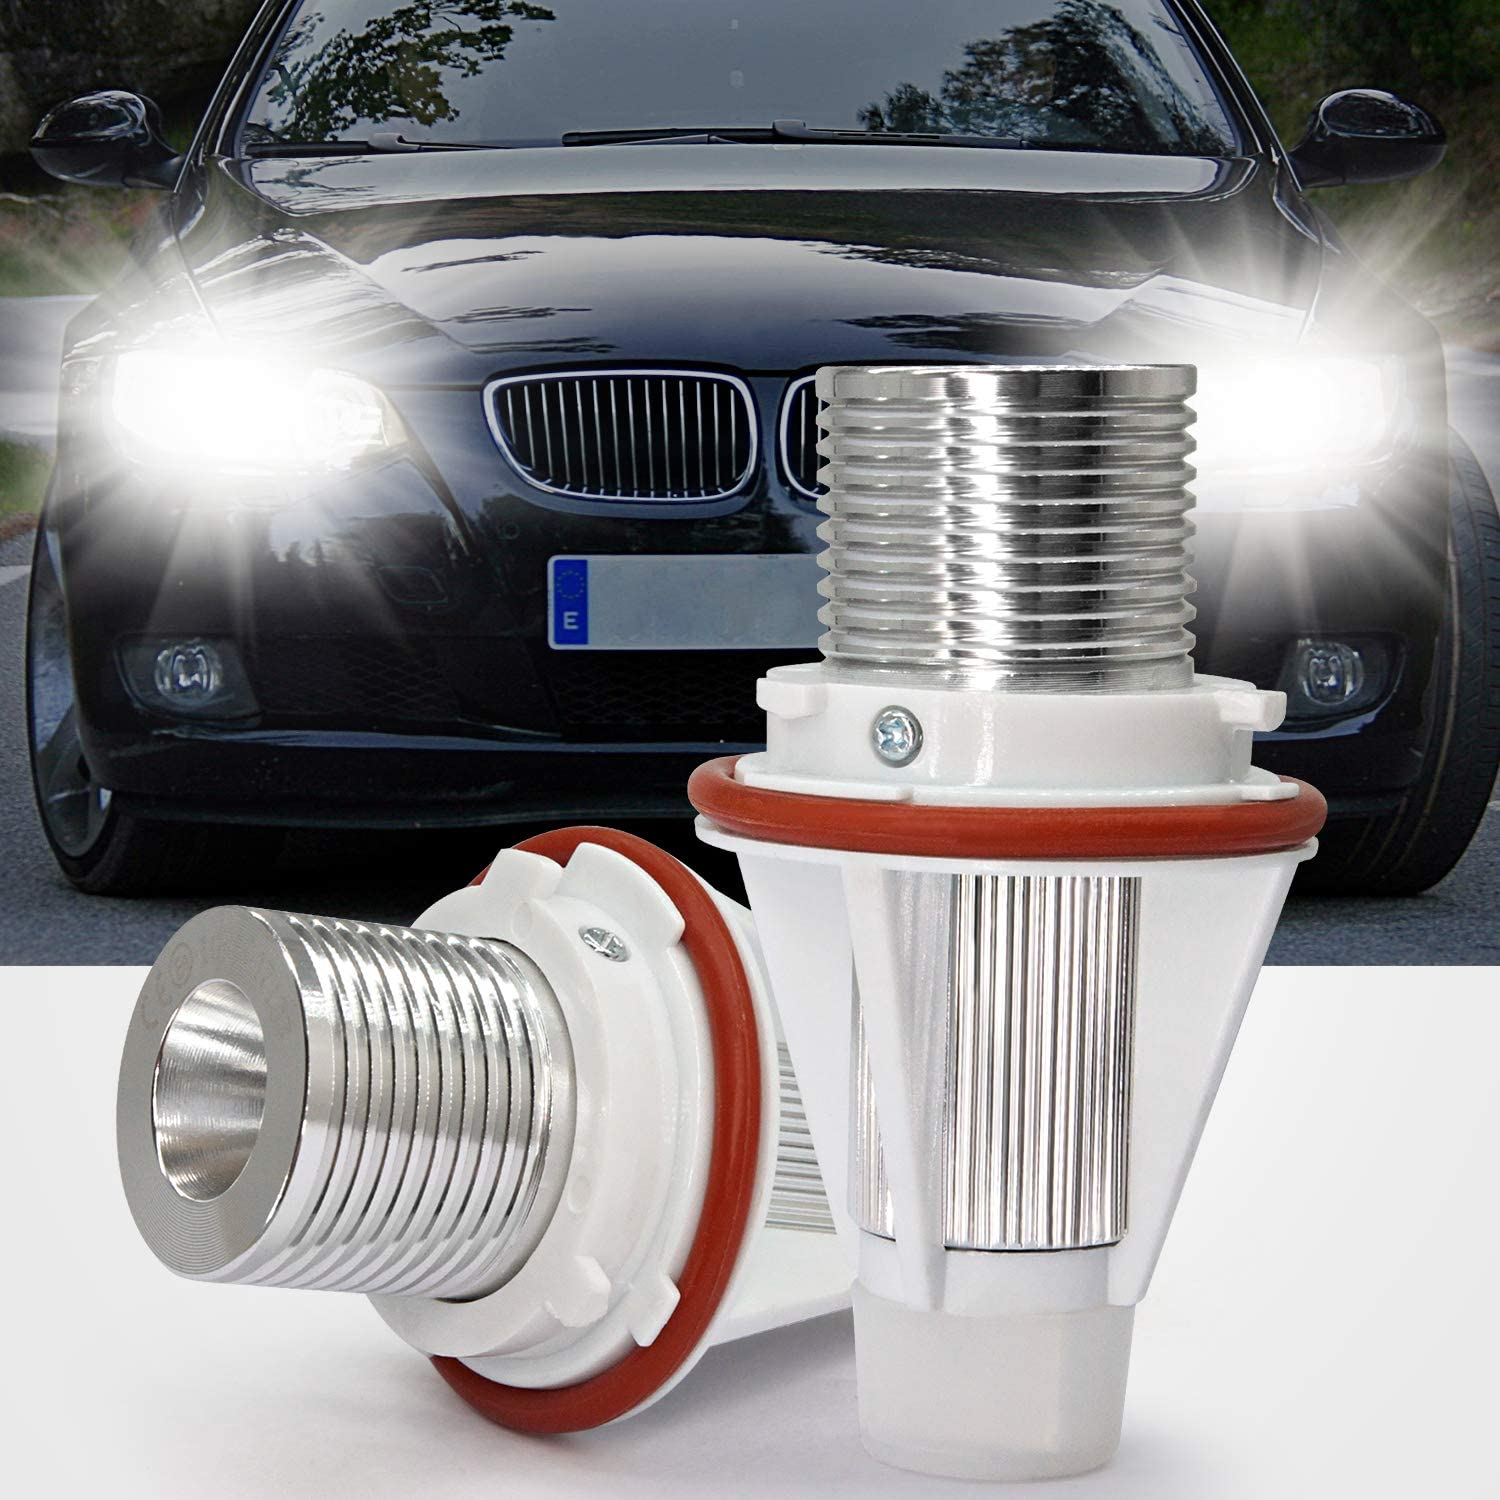 LED Angel Eyes Lights,YuanGu Auto Halo Ring Marker Bulbs Daytime Running Lights CREE 20W Xenon White with CE Mark CANBUS Error Free for E90 E91